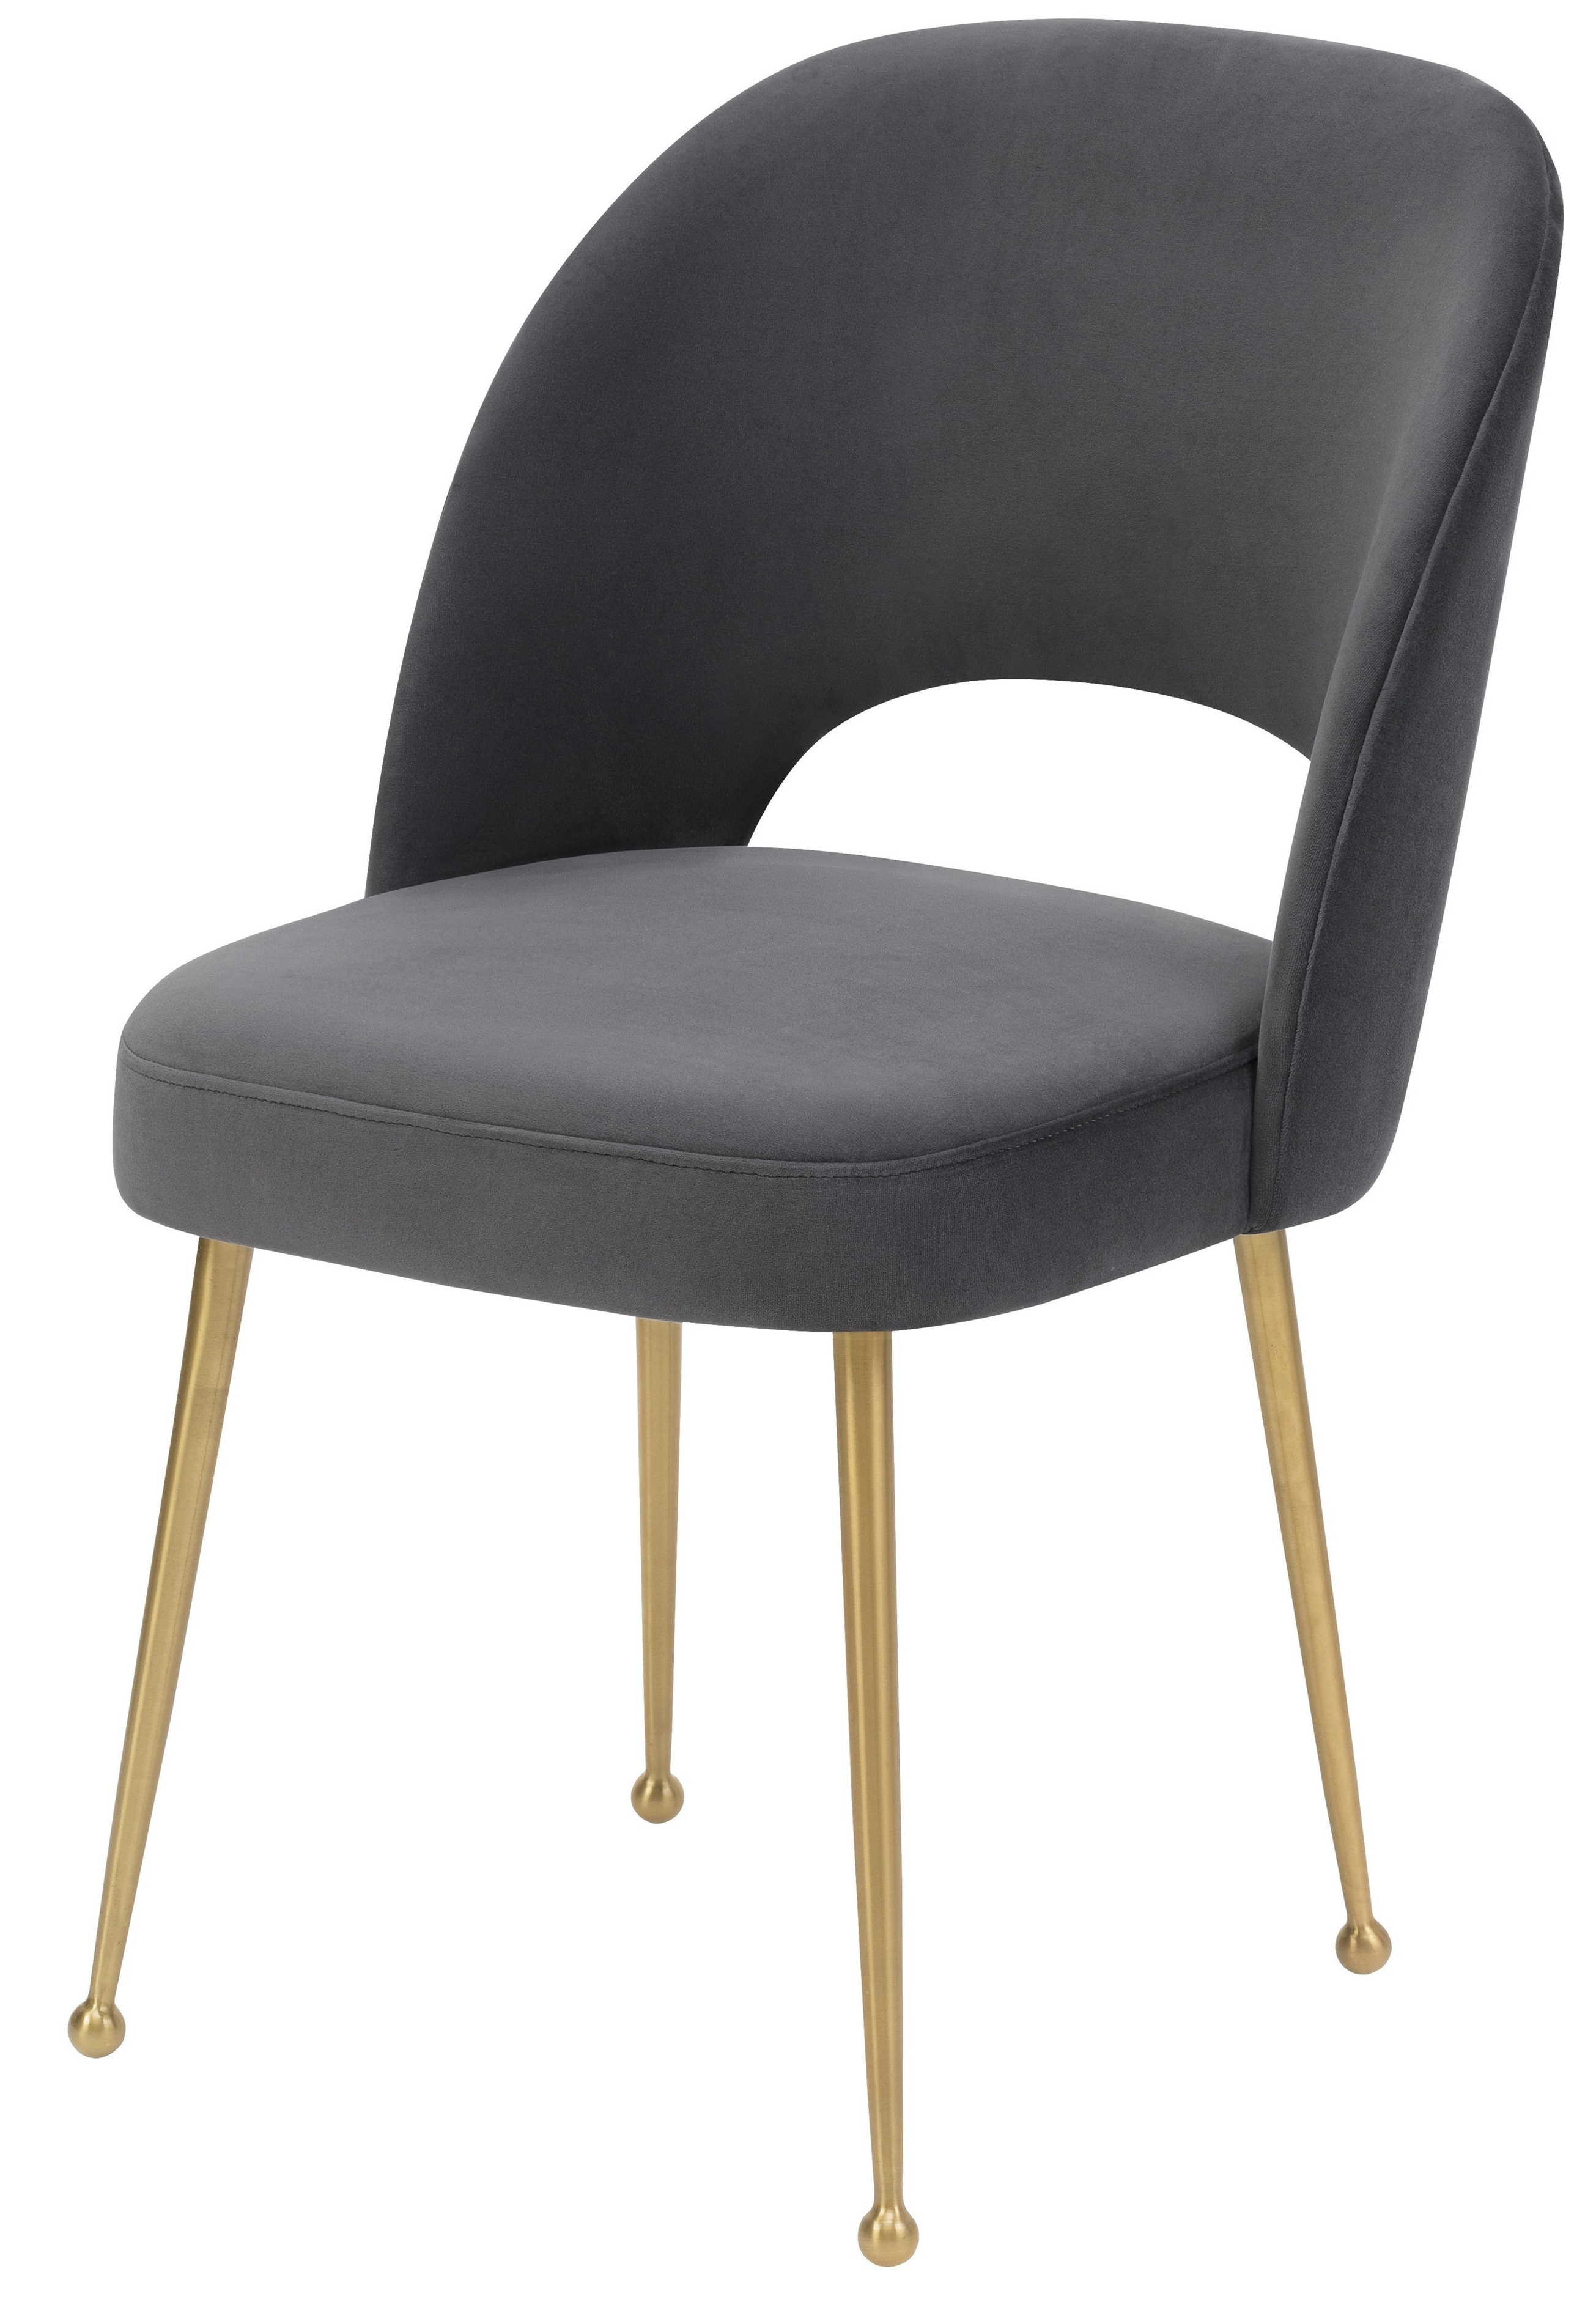 Betty Dining Chair, Charcoal Within Well Known Charcoal Dining Chairs (View 2 of 20)